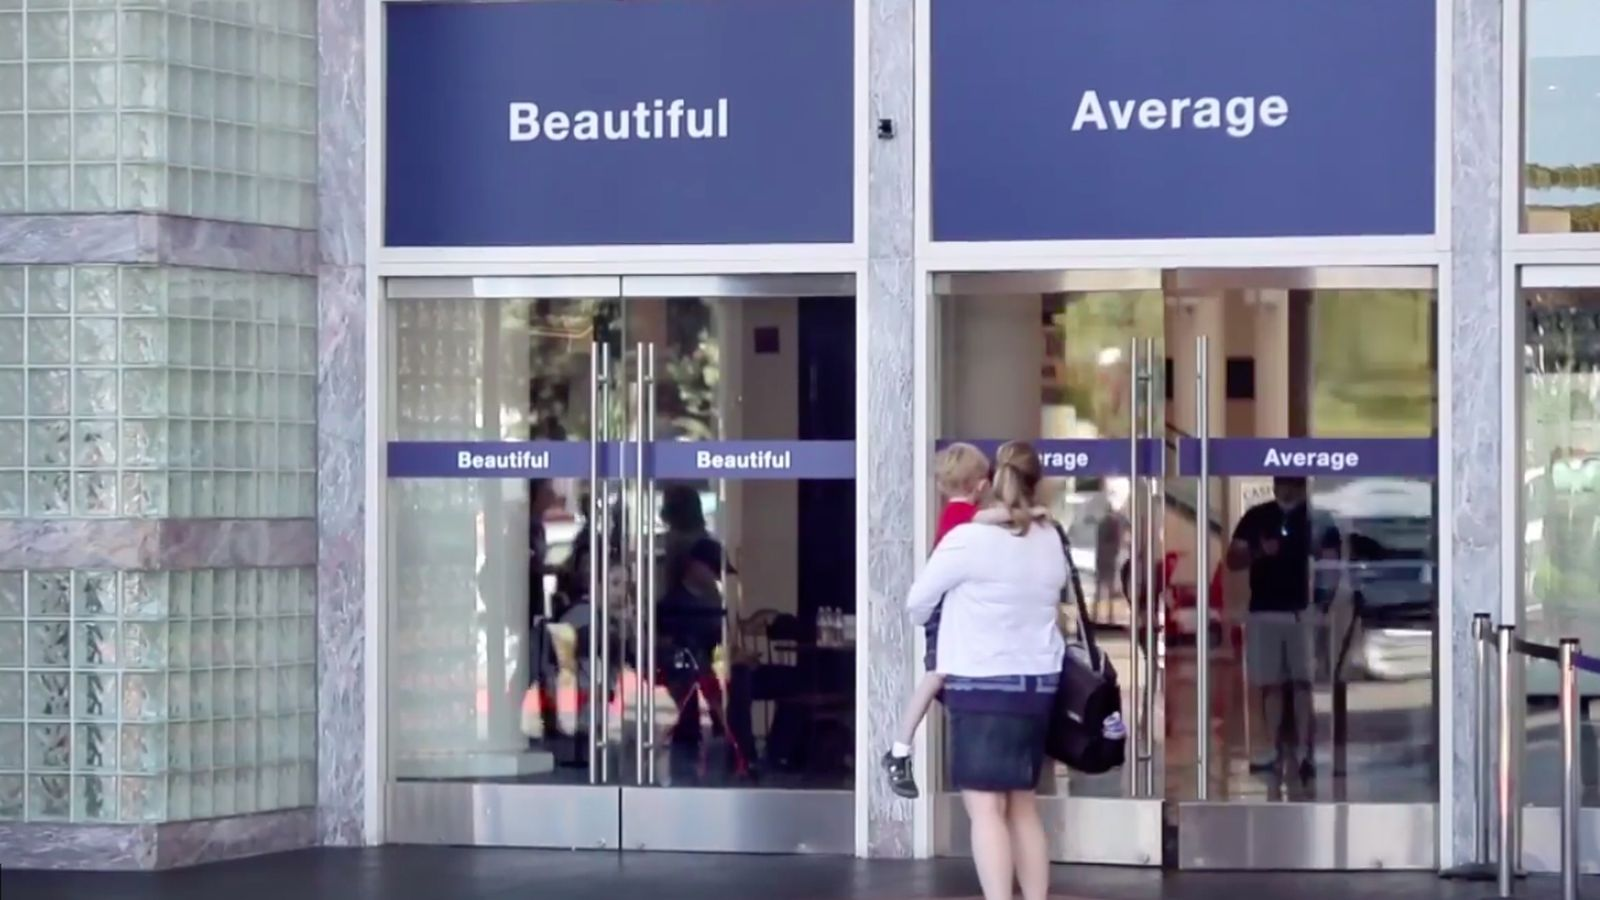 Dove Forces Women To Walk Through Doors Labeled Beautiful or Average in New Ad